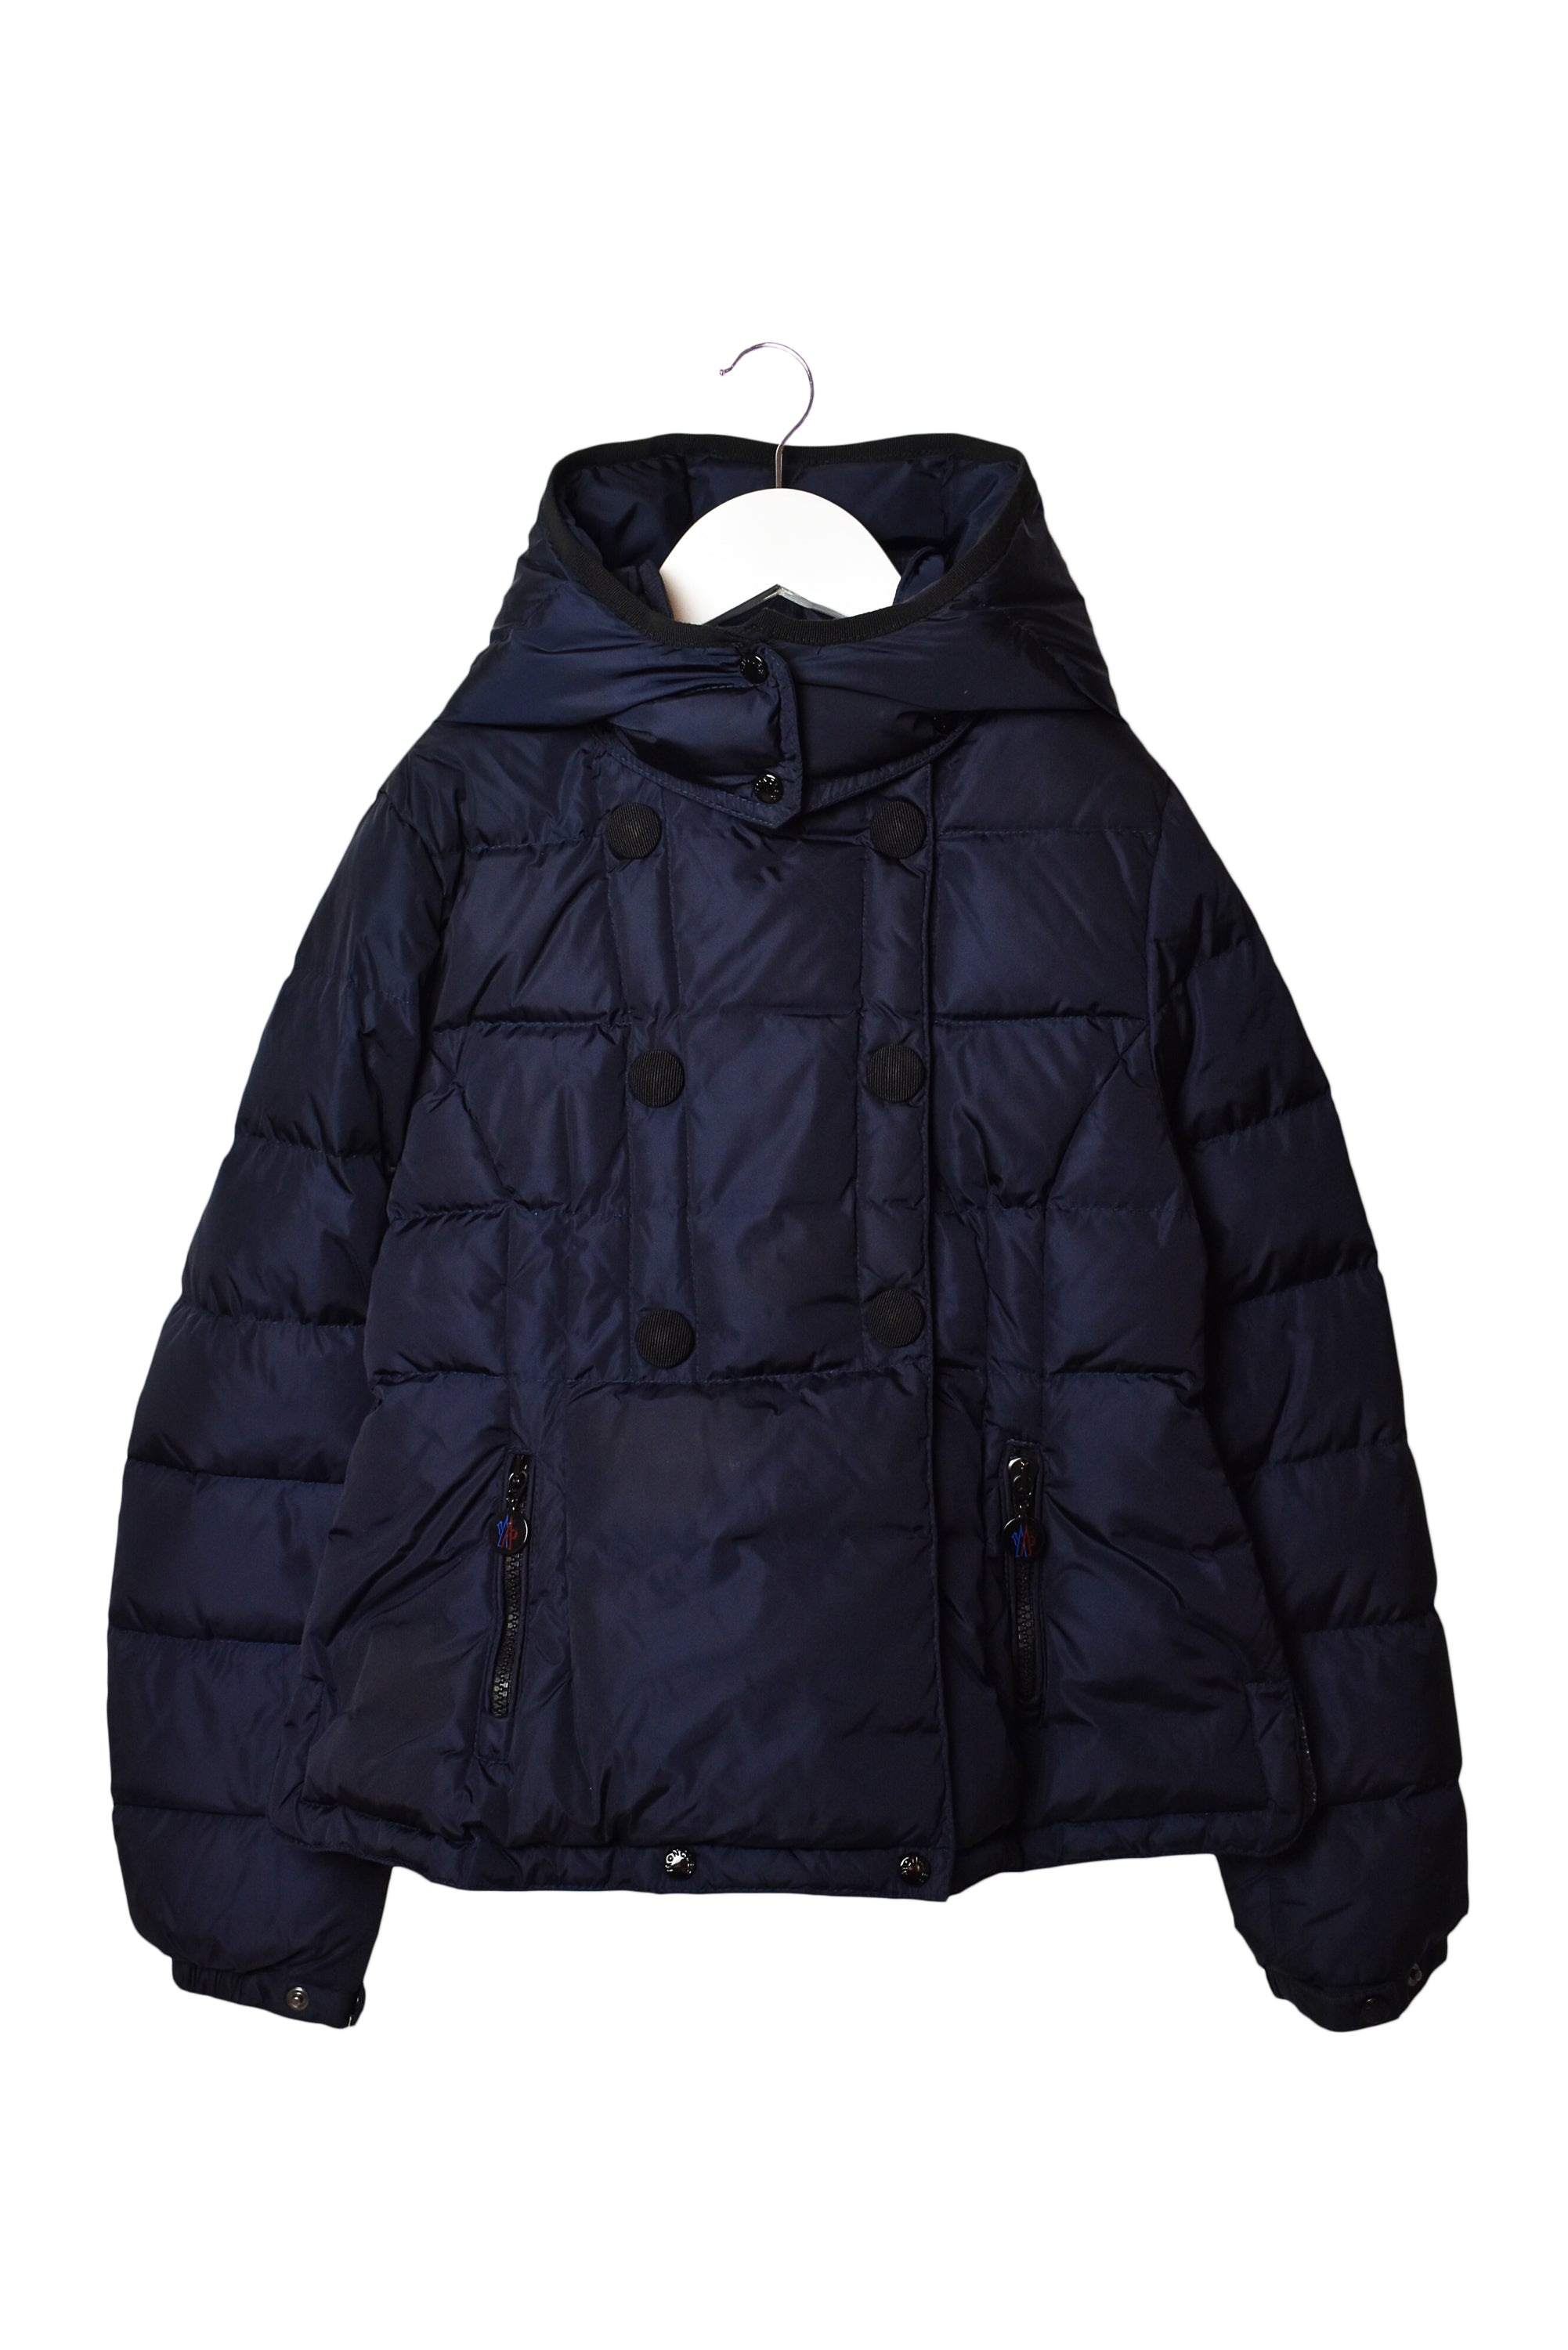 10008207 Moncler Kids~Puffer Jacket 10 at Retykle